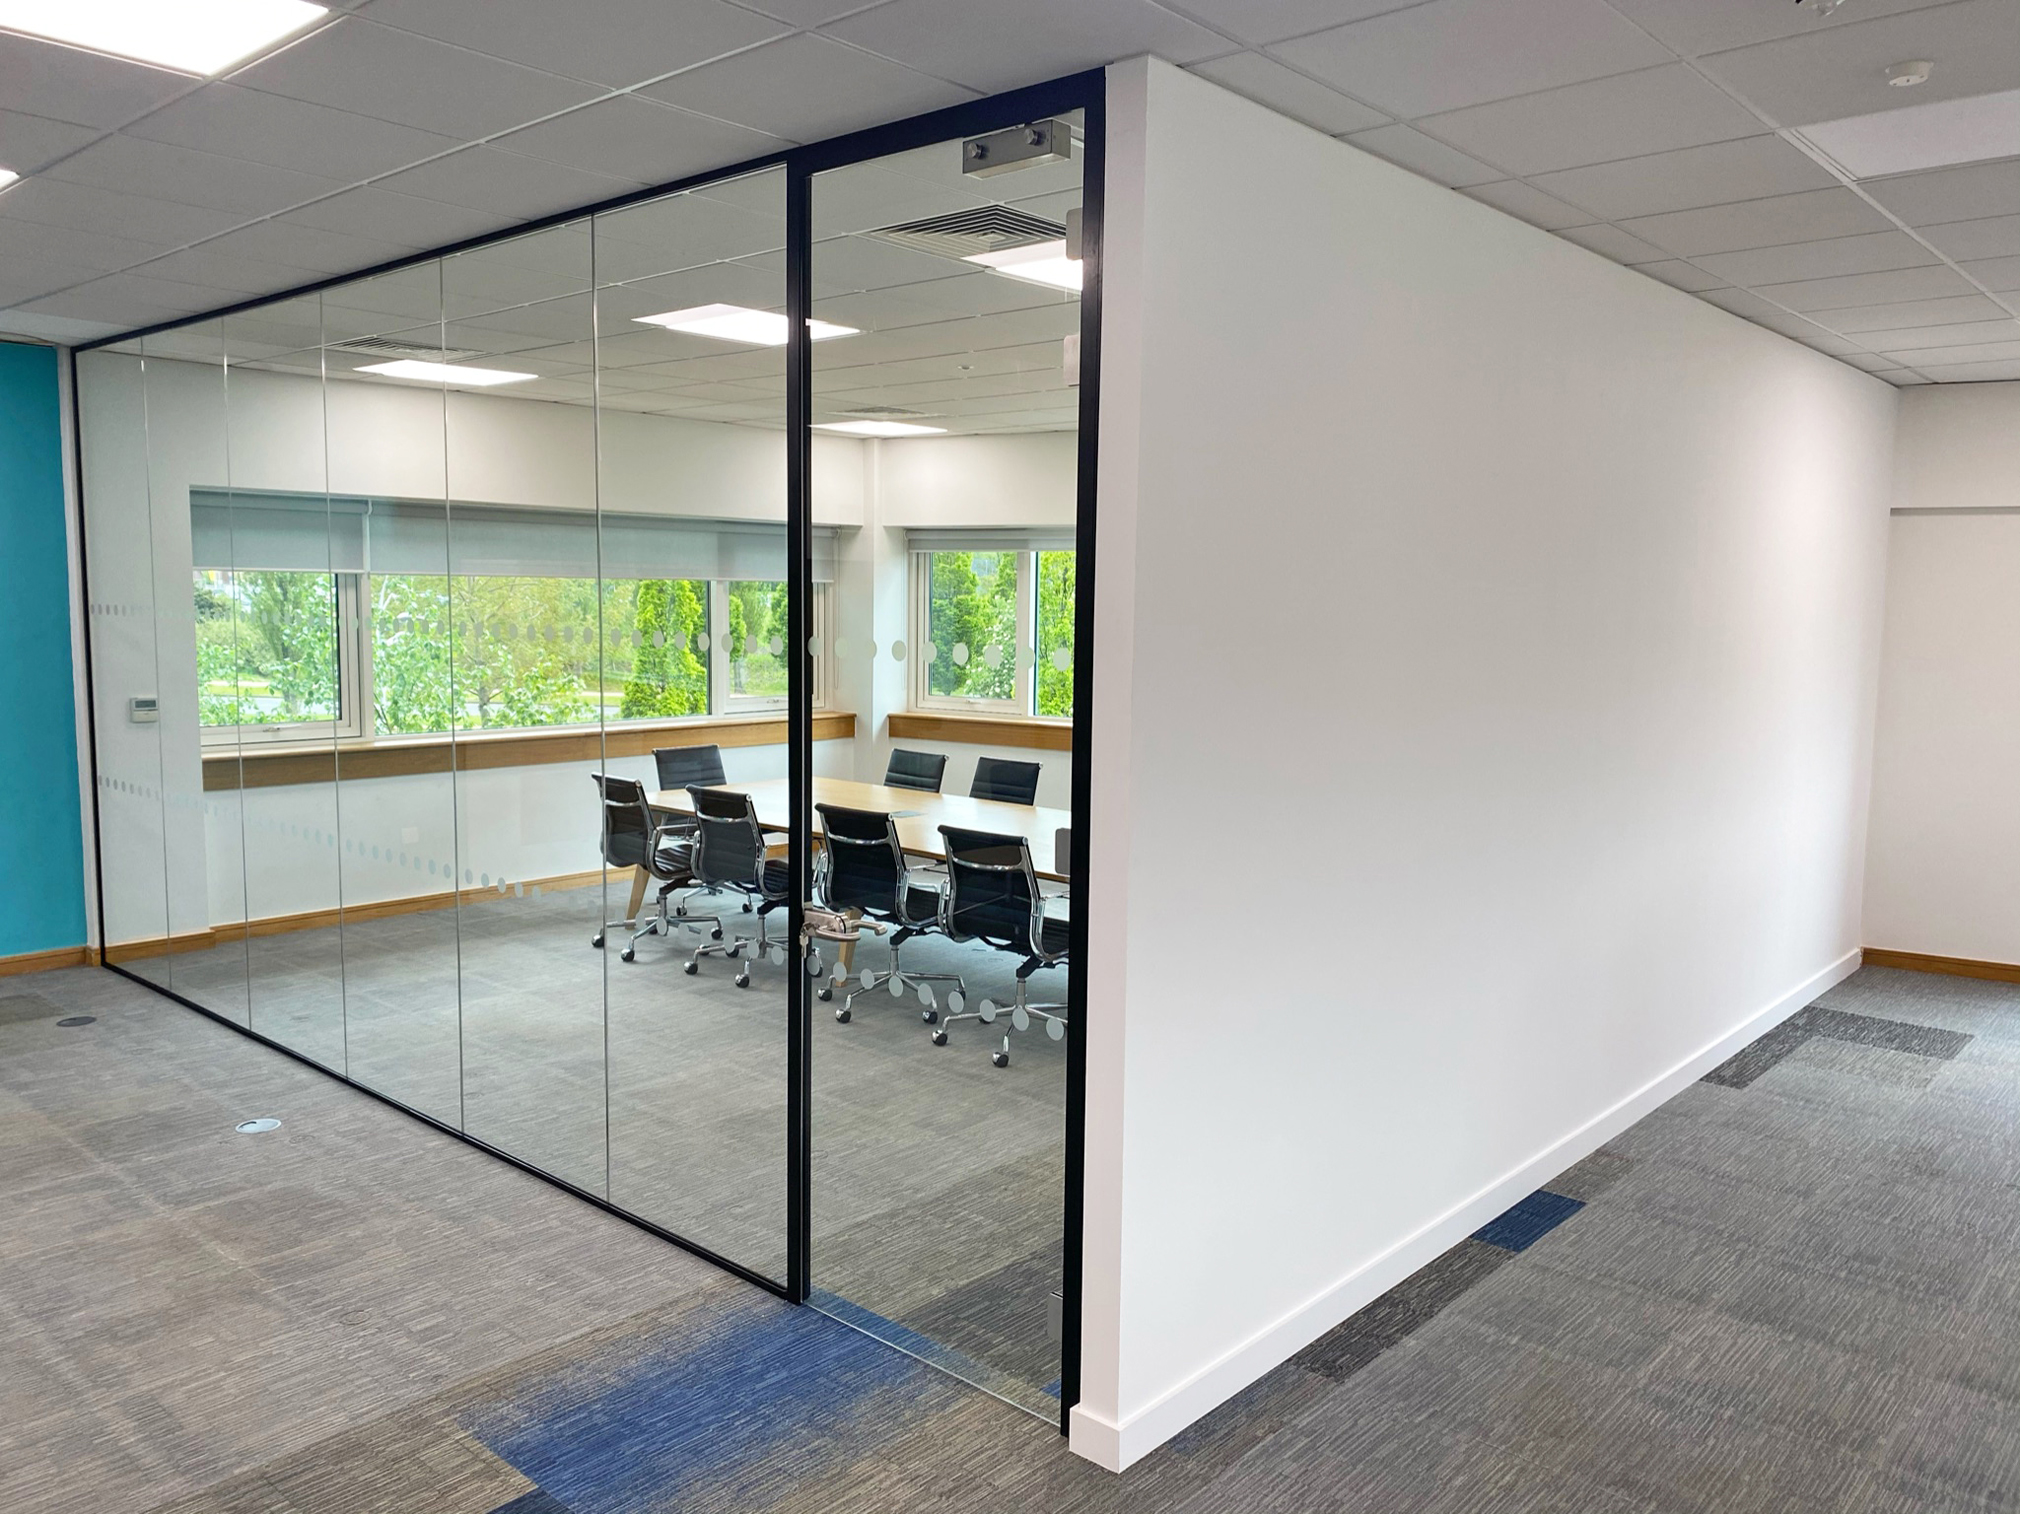 Industrial frameless glass partitioning